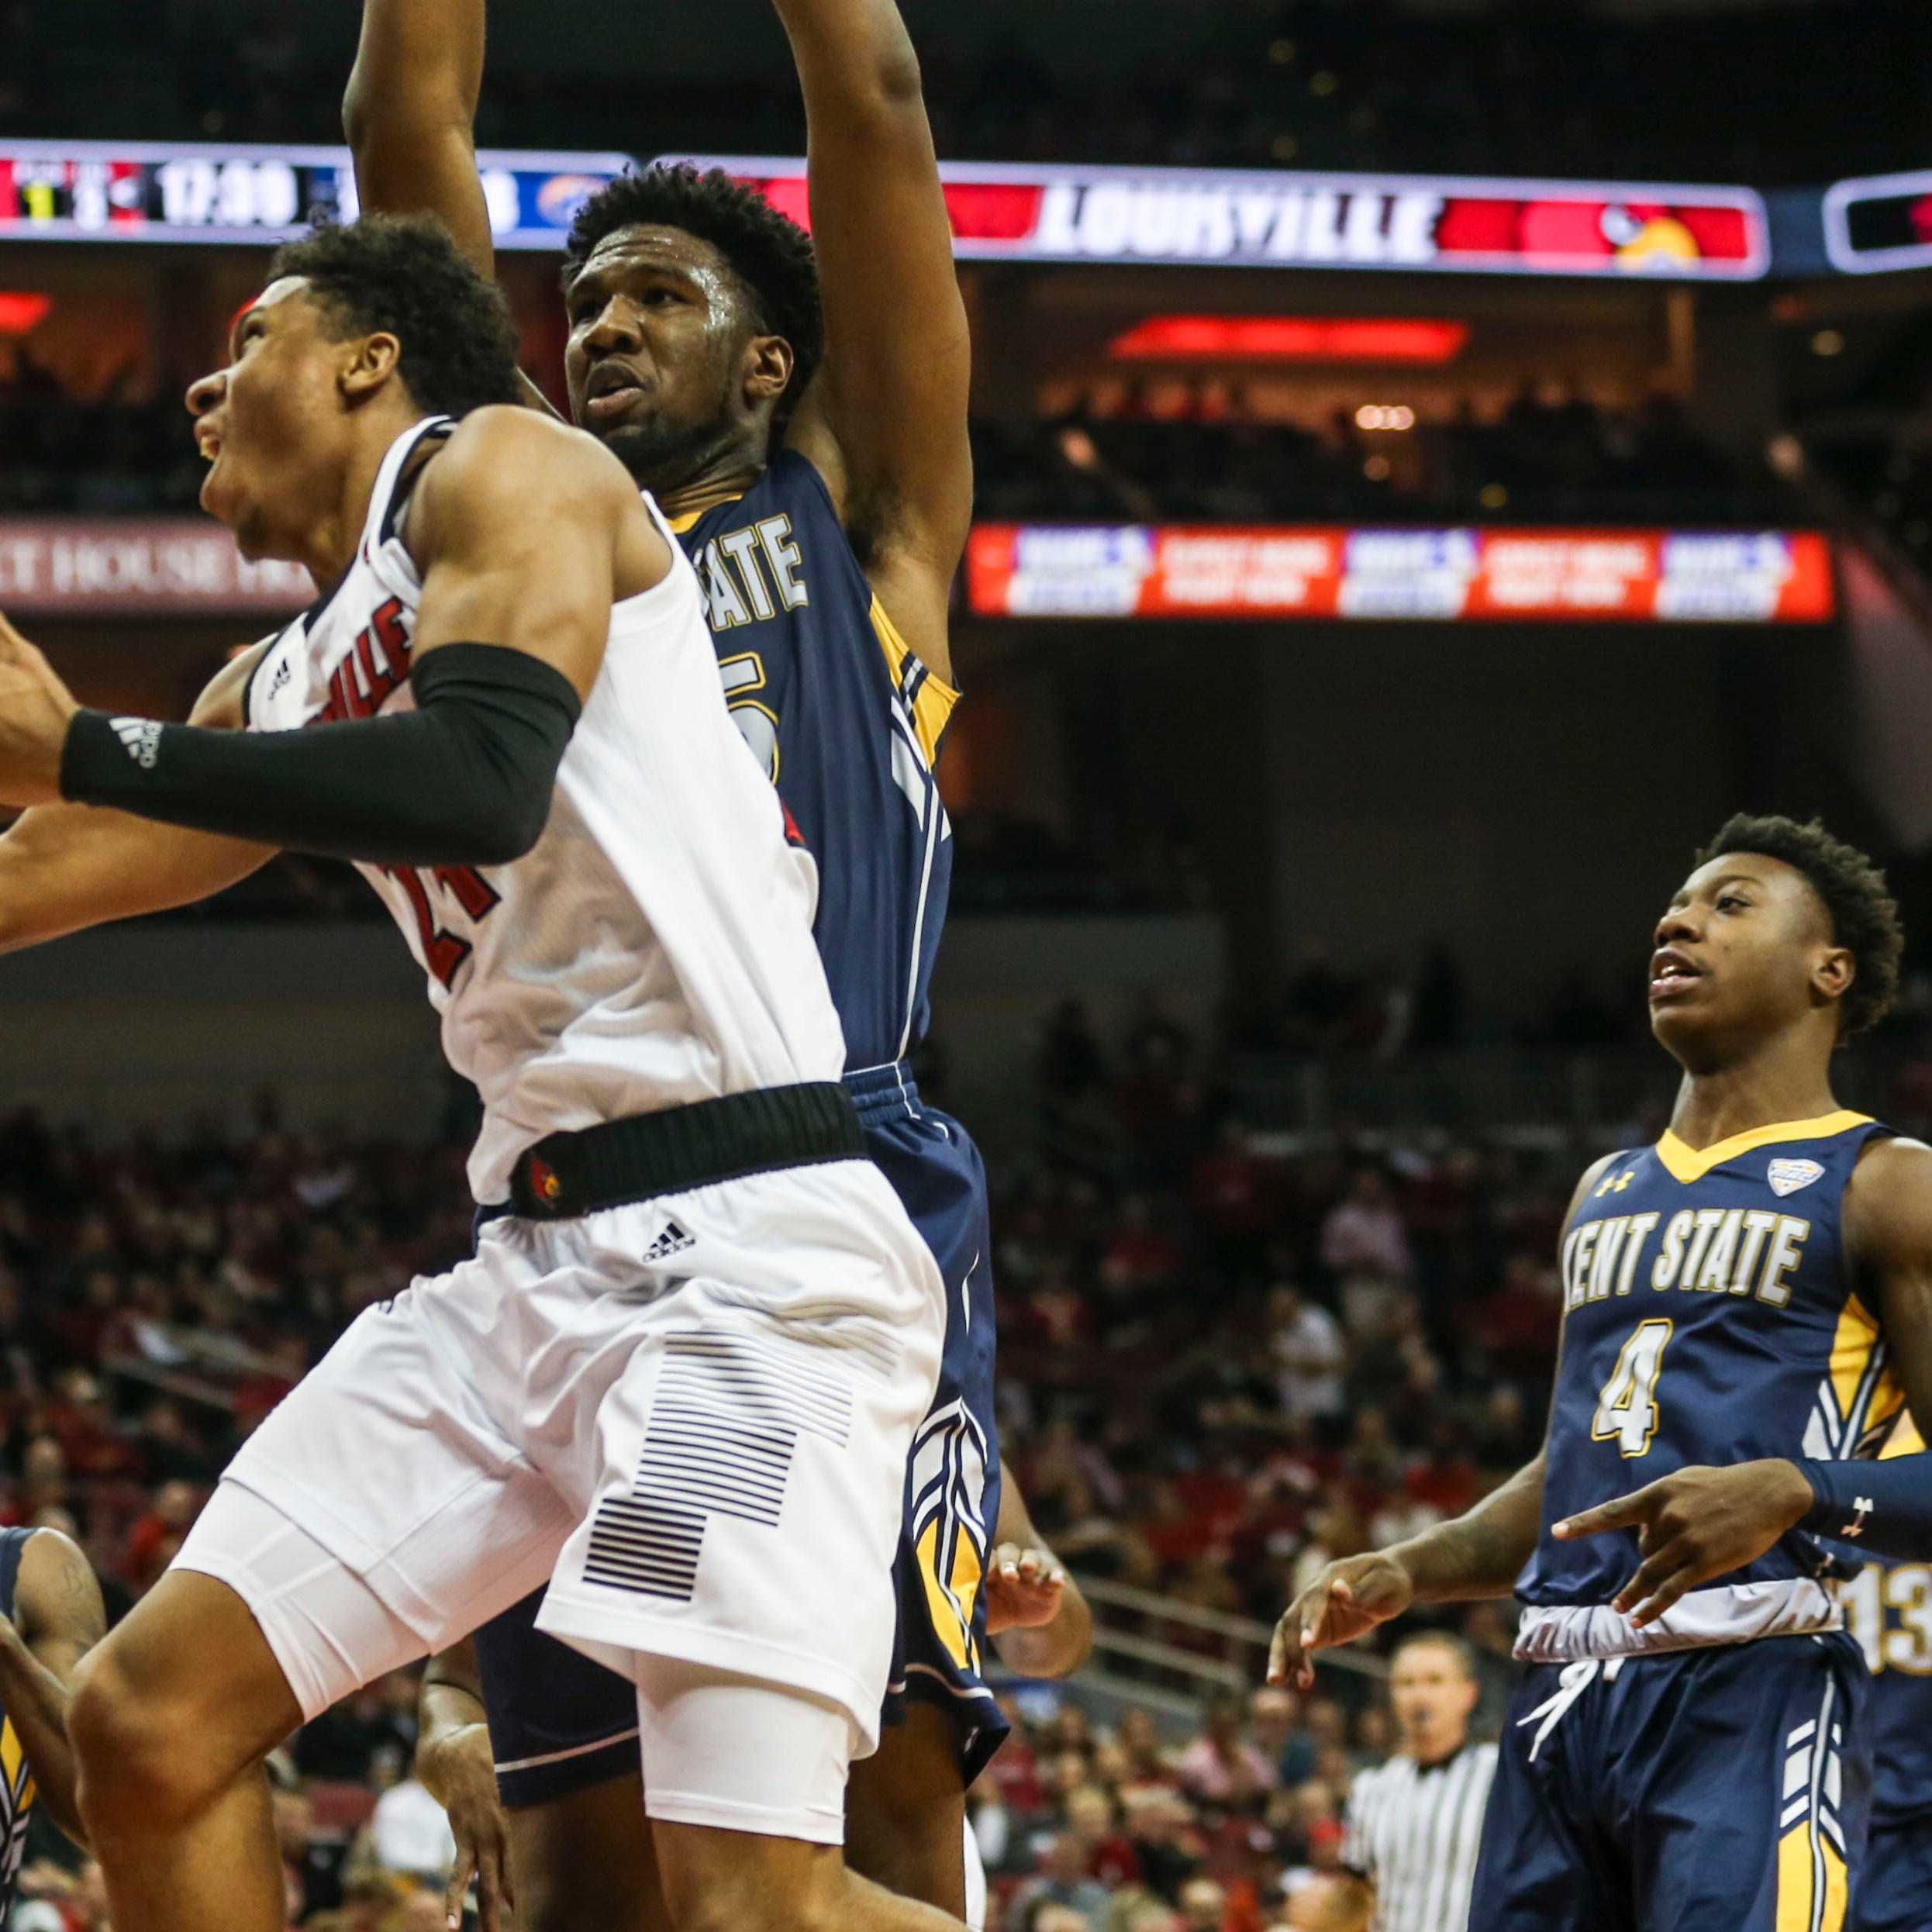 Sleek, balanced offense leads Louisville basketball in Kent State win